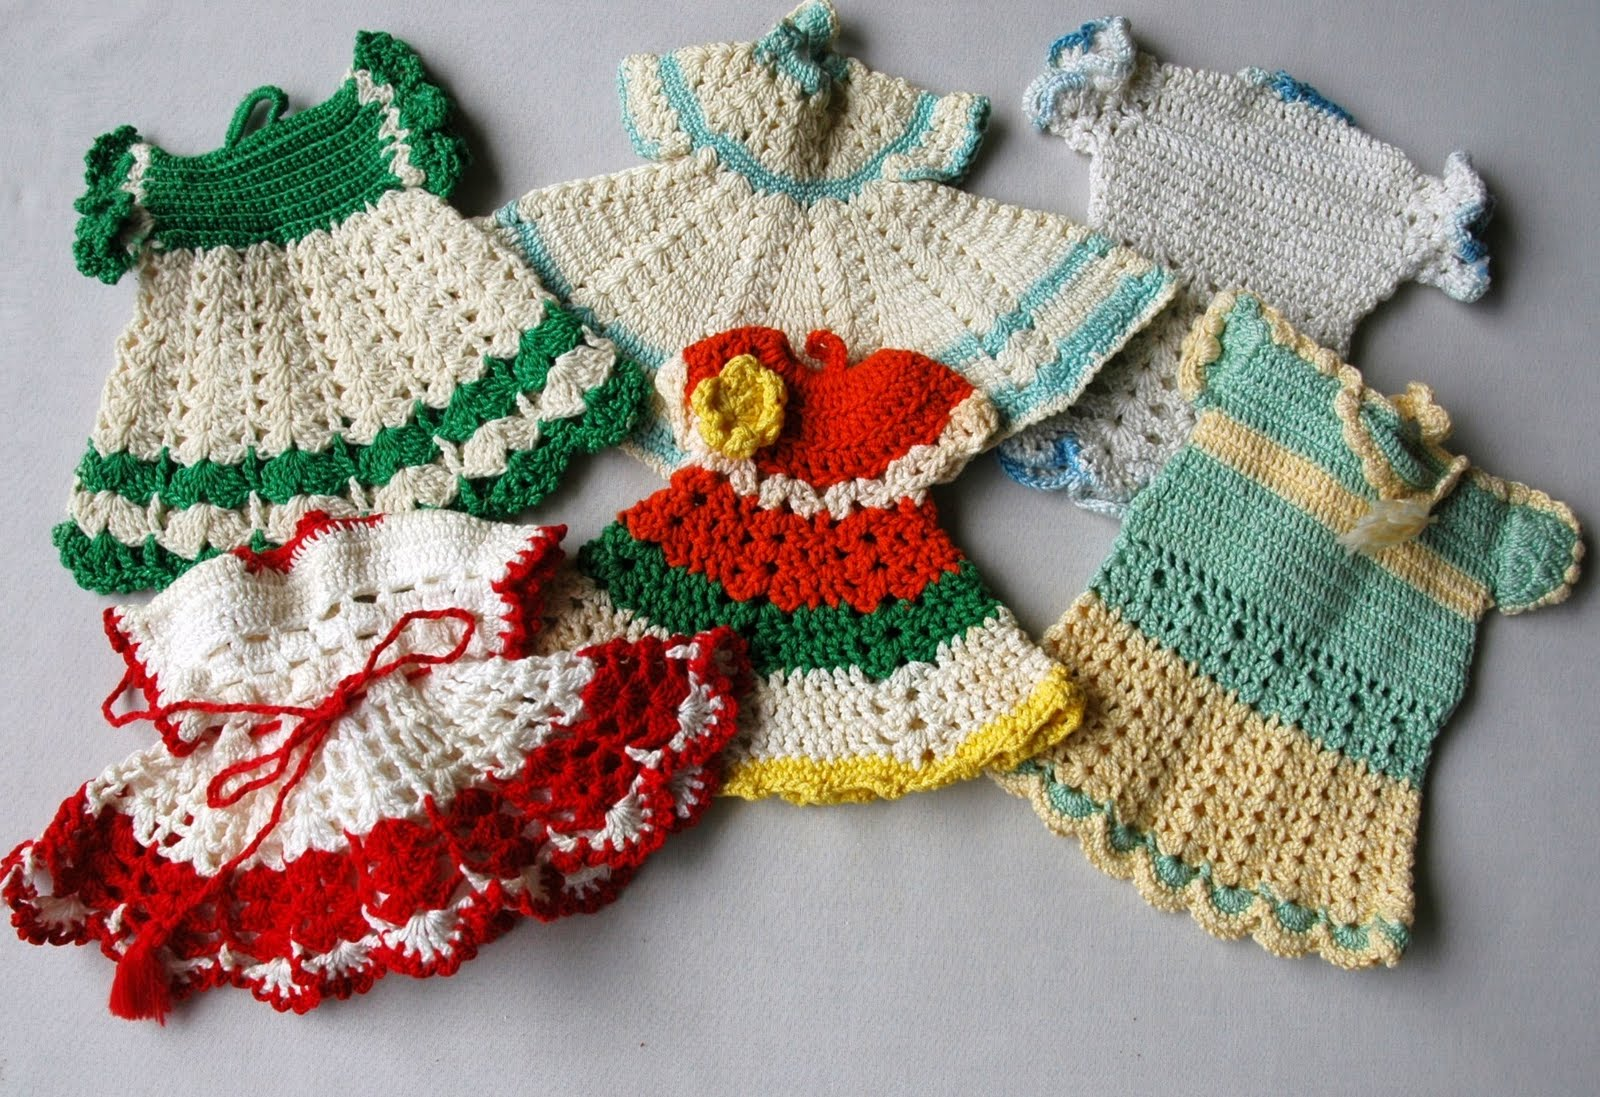 Crochet Patterns Vintage Potholders : ... Stuff: Collecting Hand Crocheted Pot Holders In Dress Designs